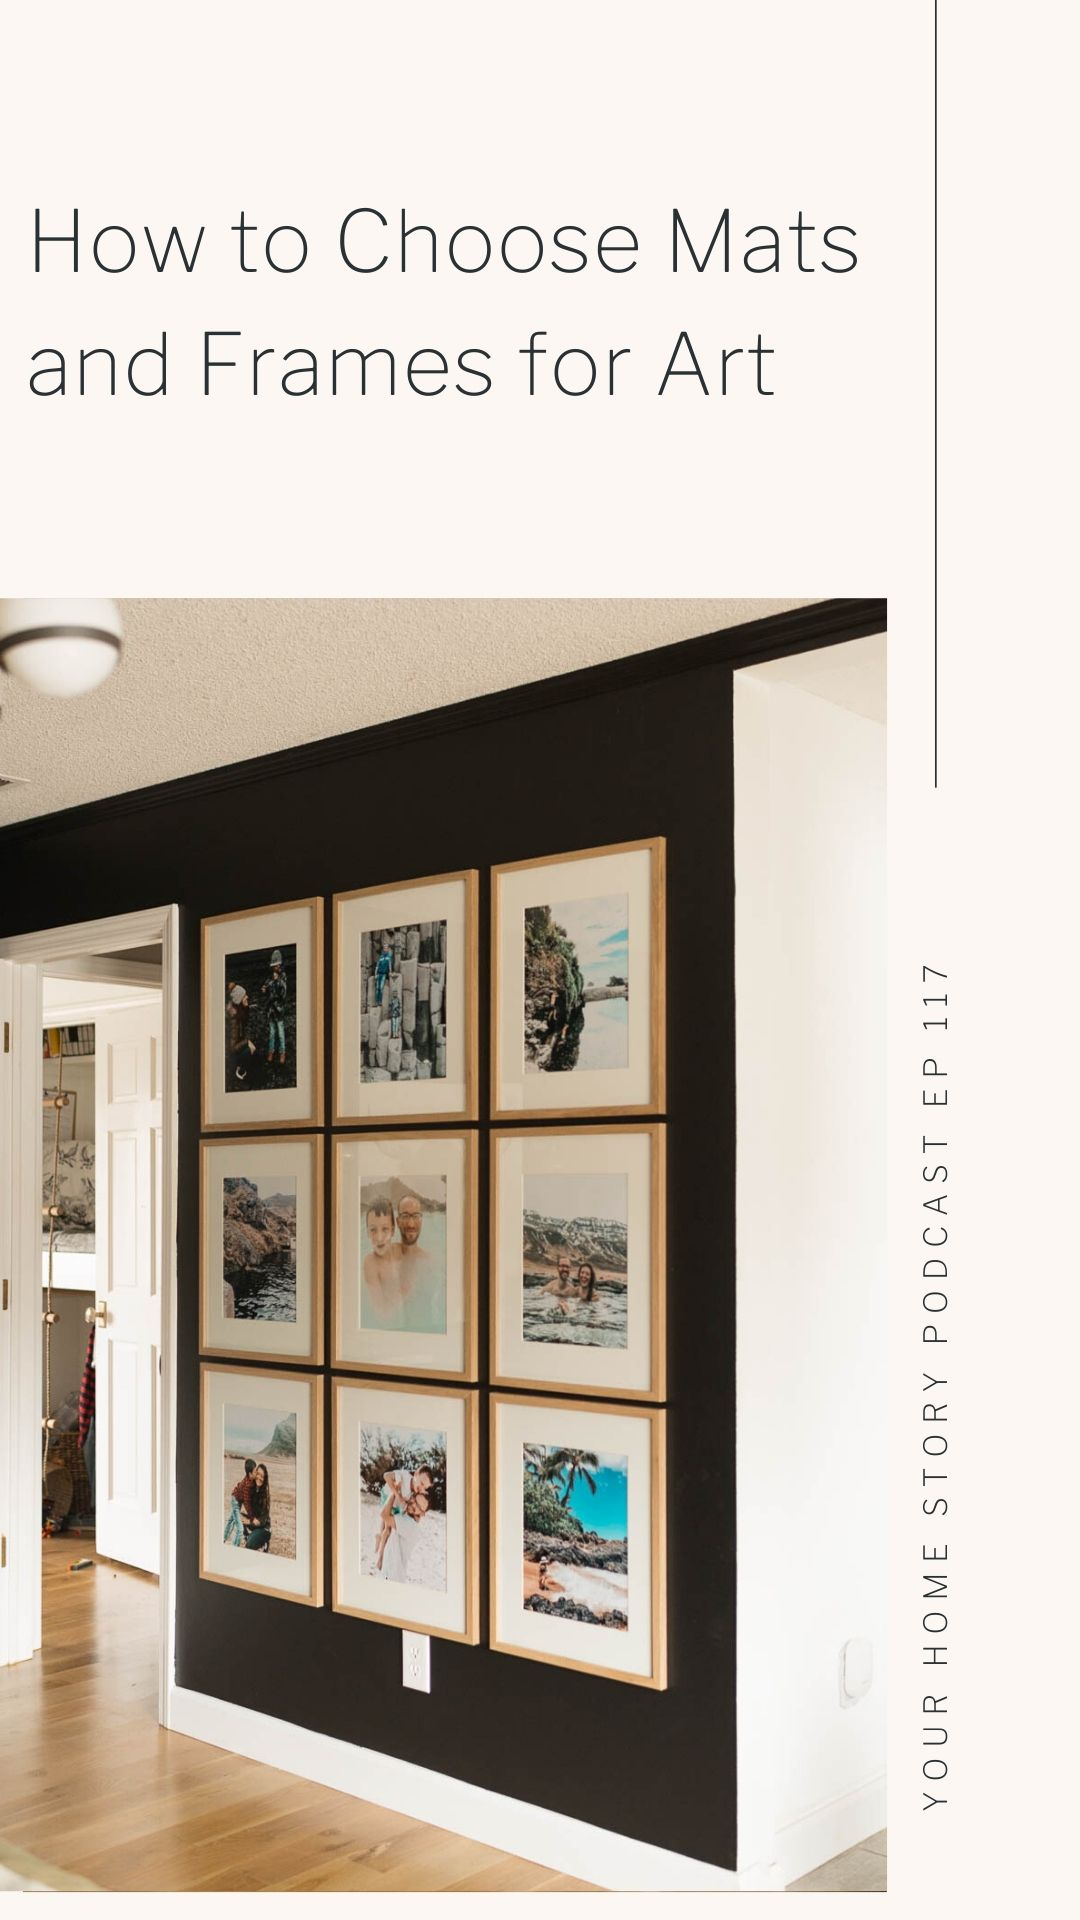 Family gallery wall: how to choose mats and frames for art